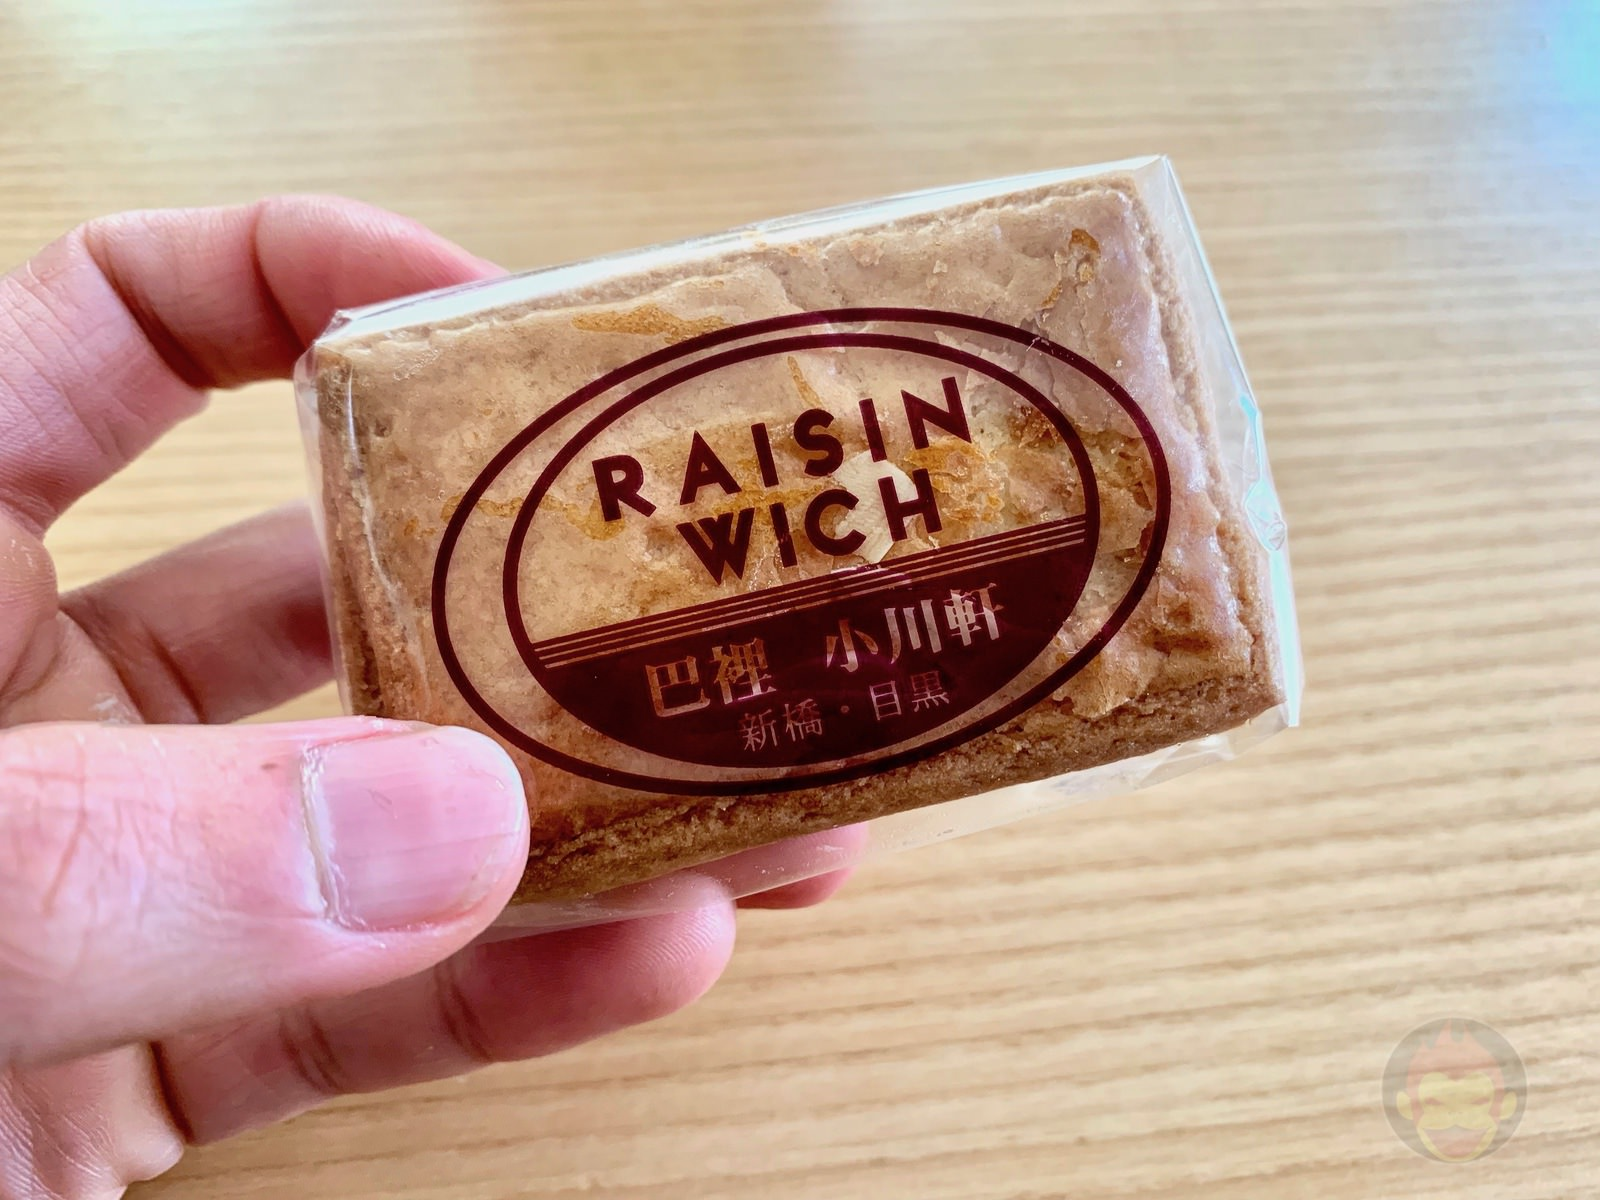 Ogawaken Raisin Wich Original 05